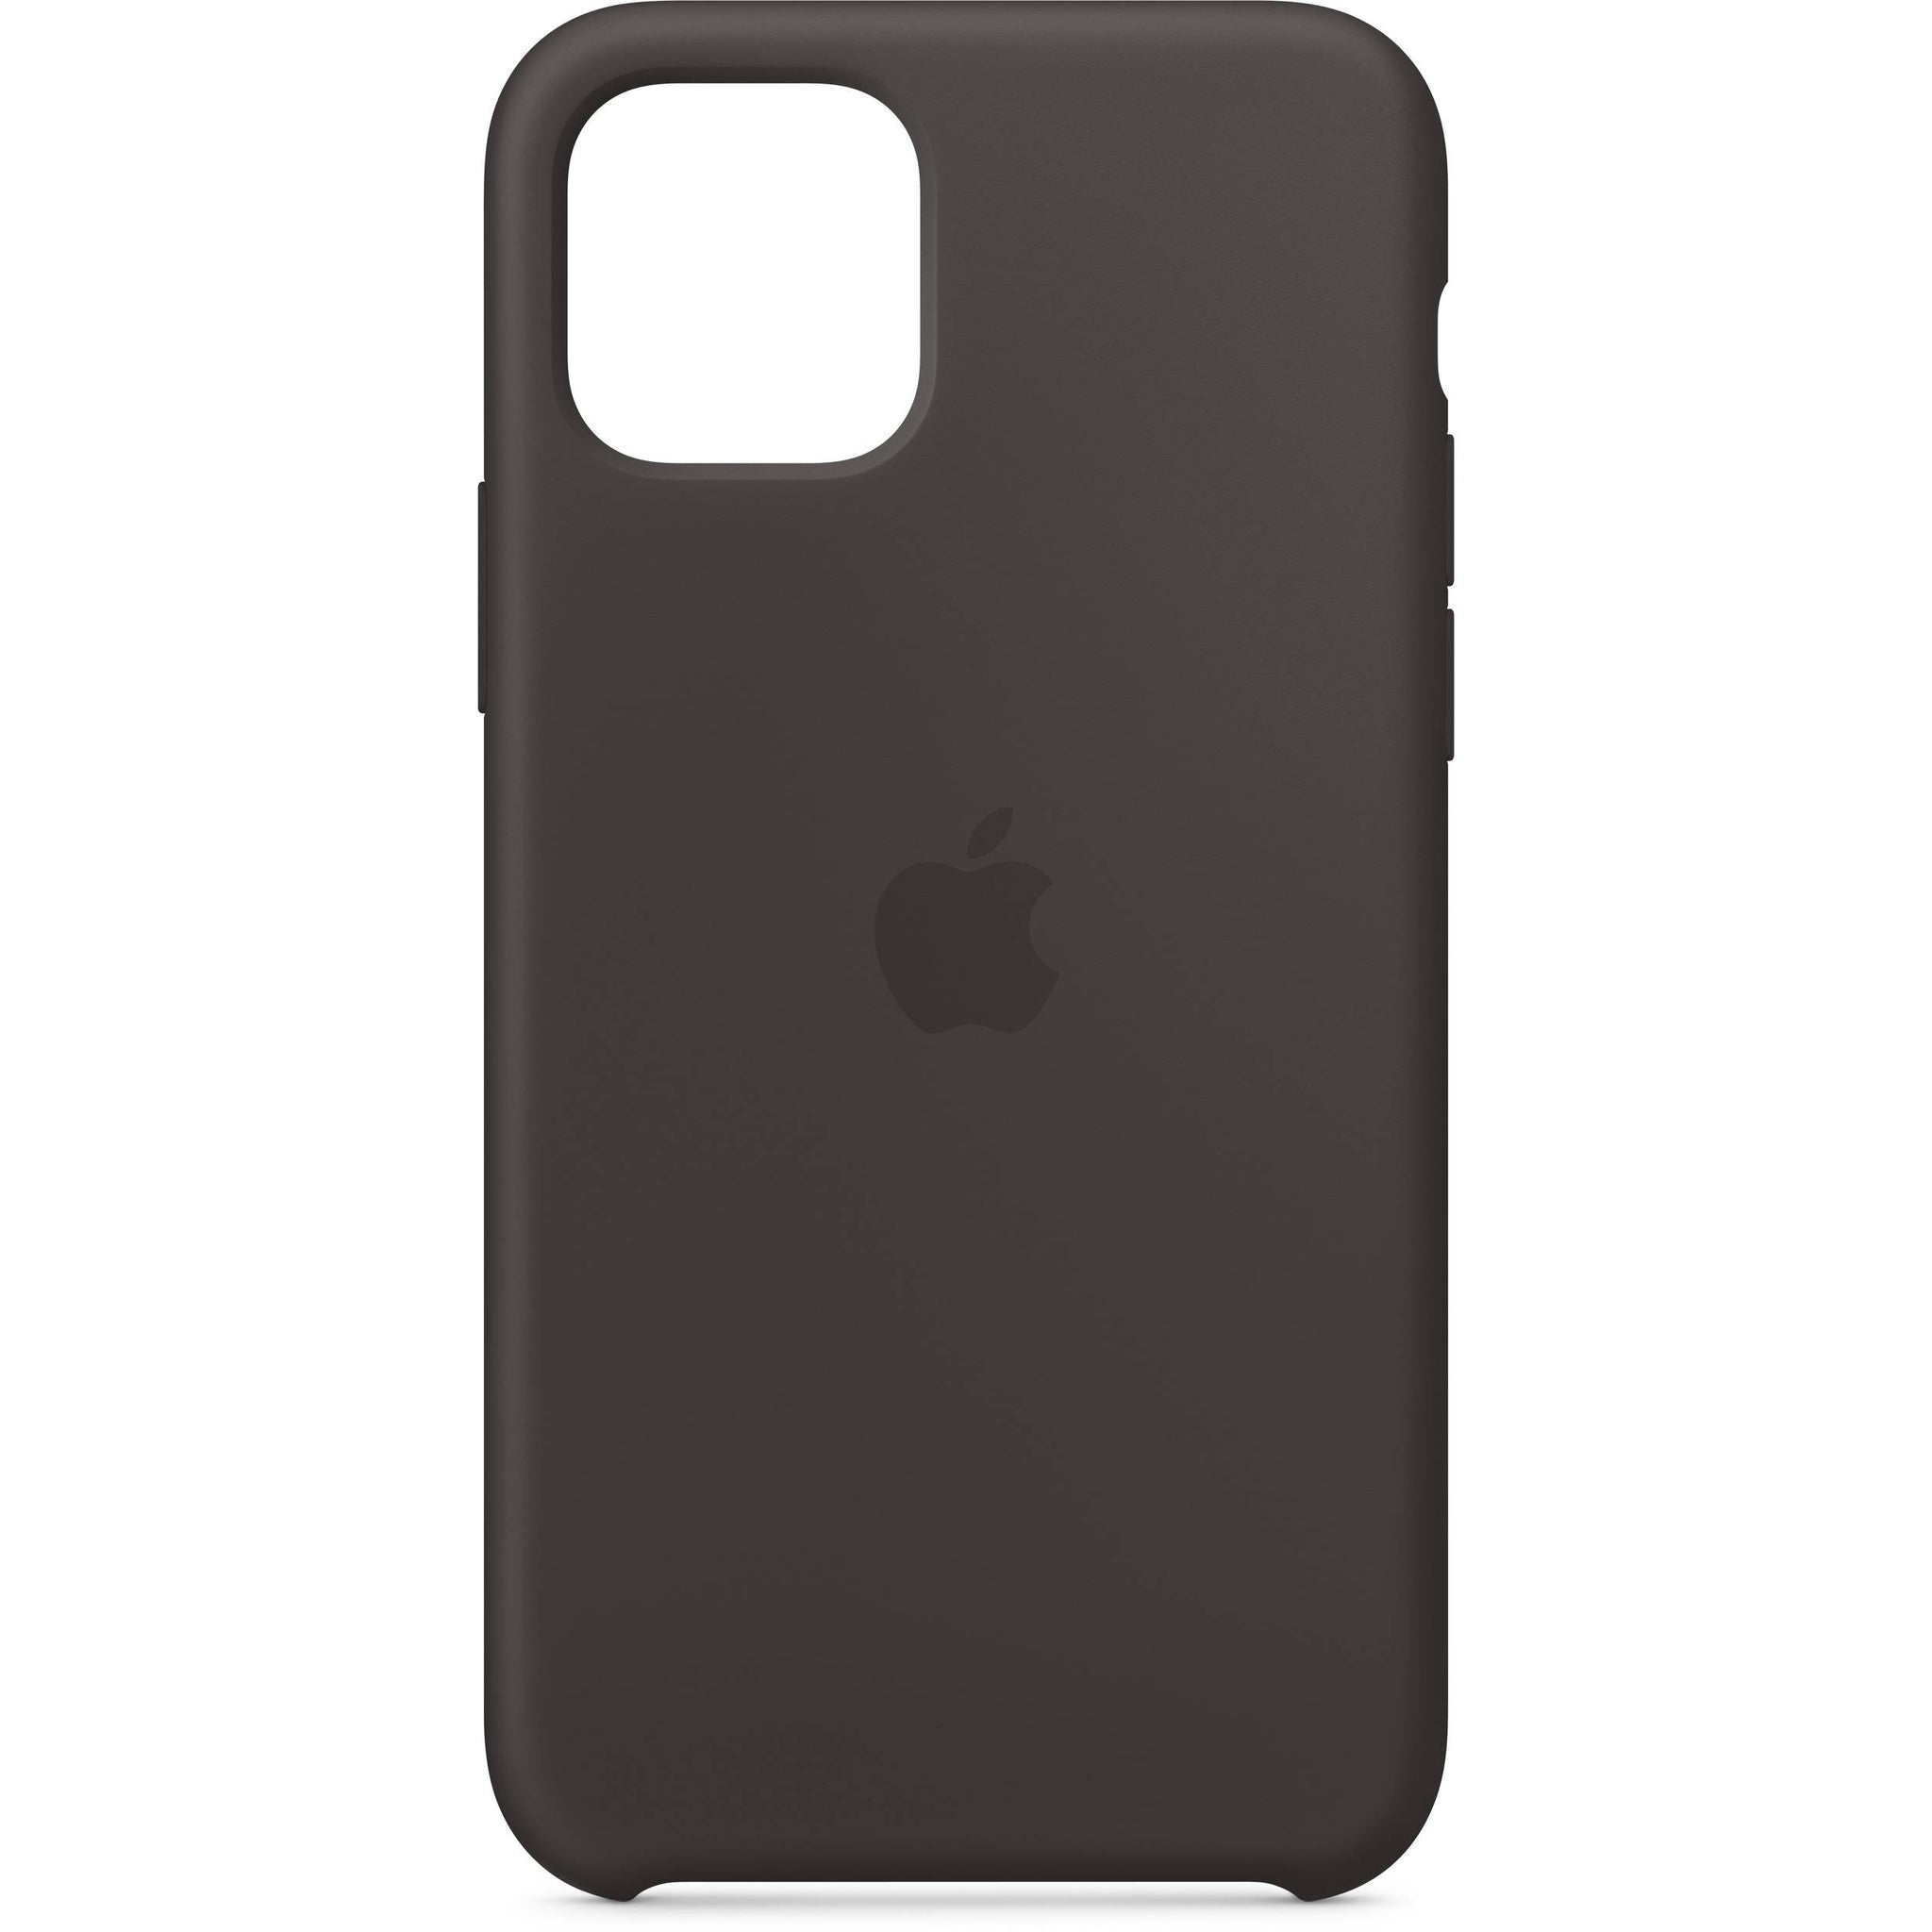 Apple iPhone 11 Pro Silicone Case - Black